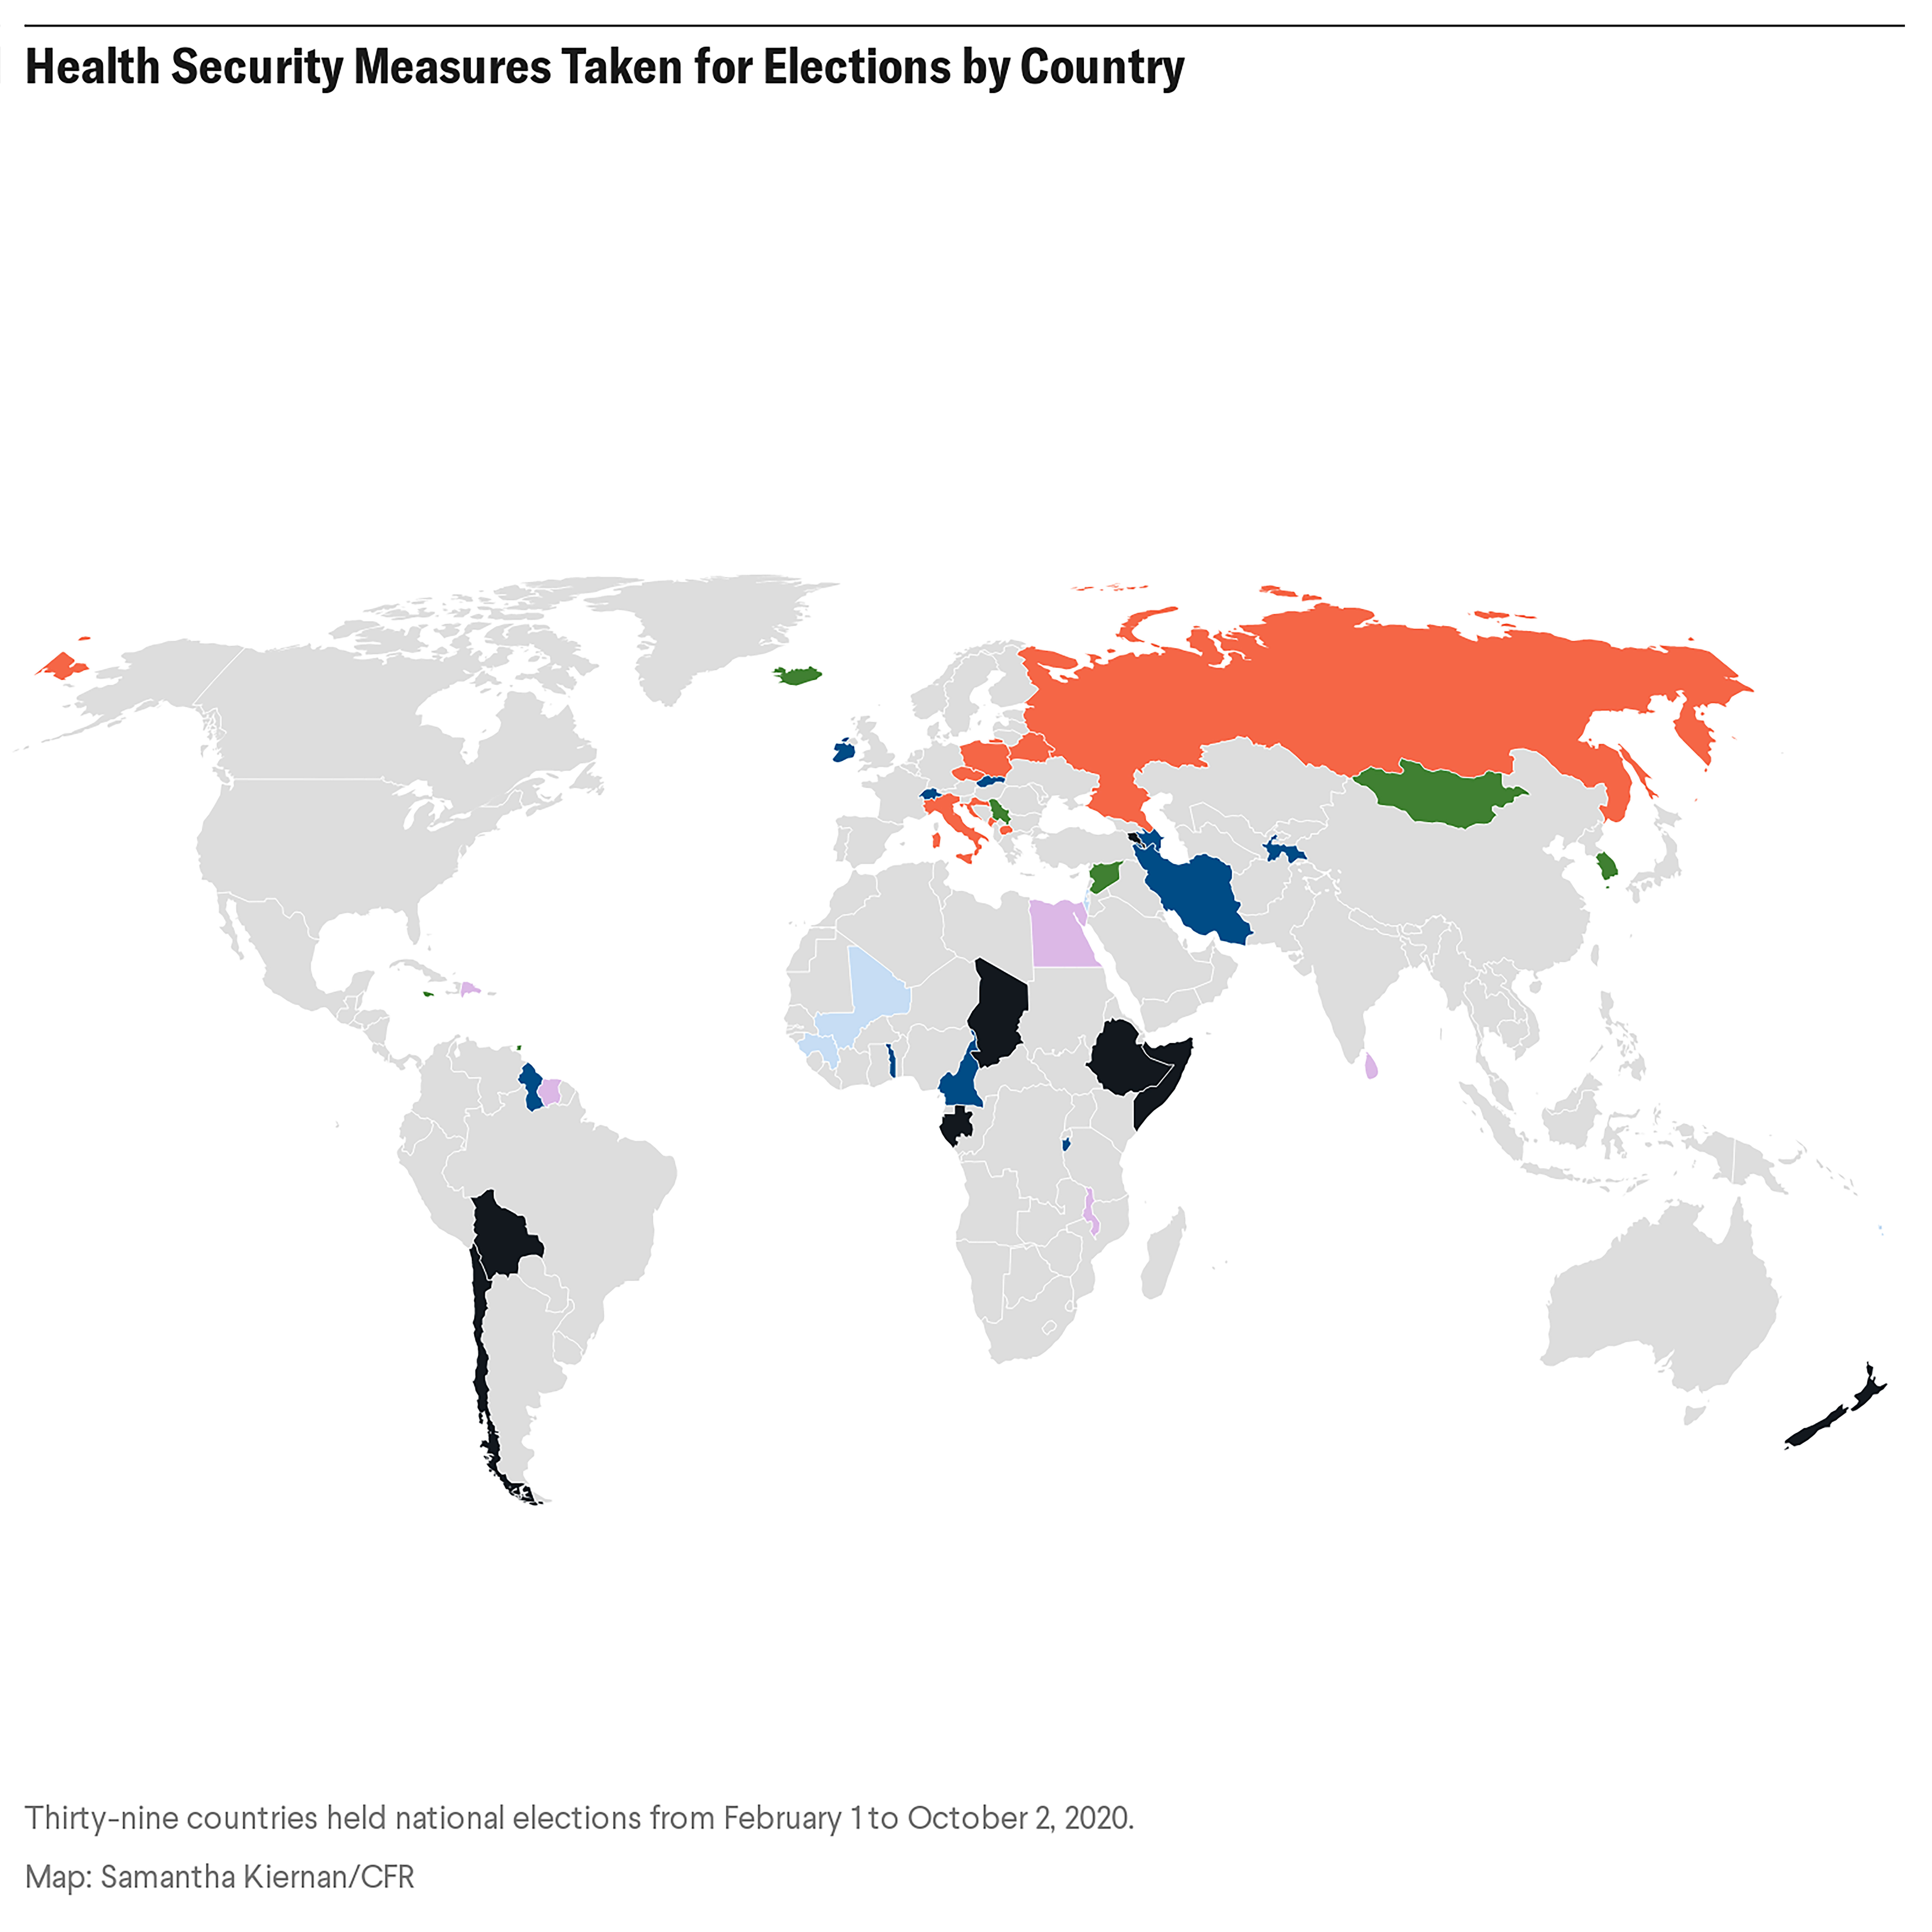 Health security measures taken for elections by country